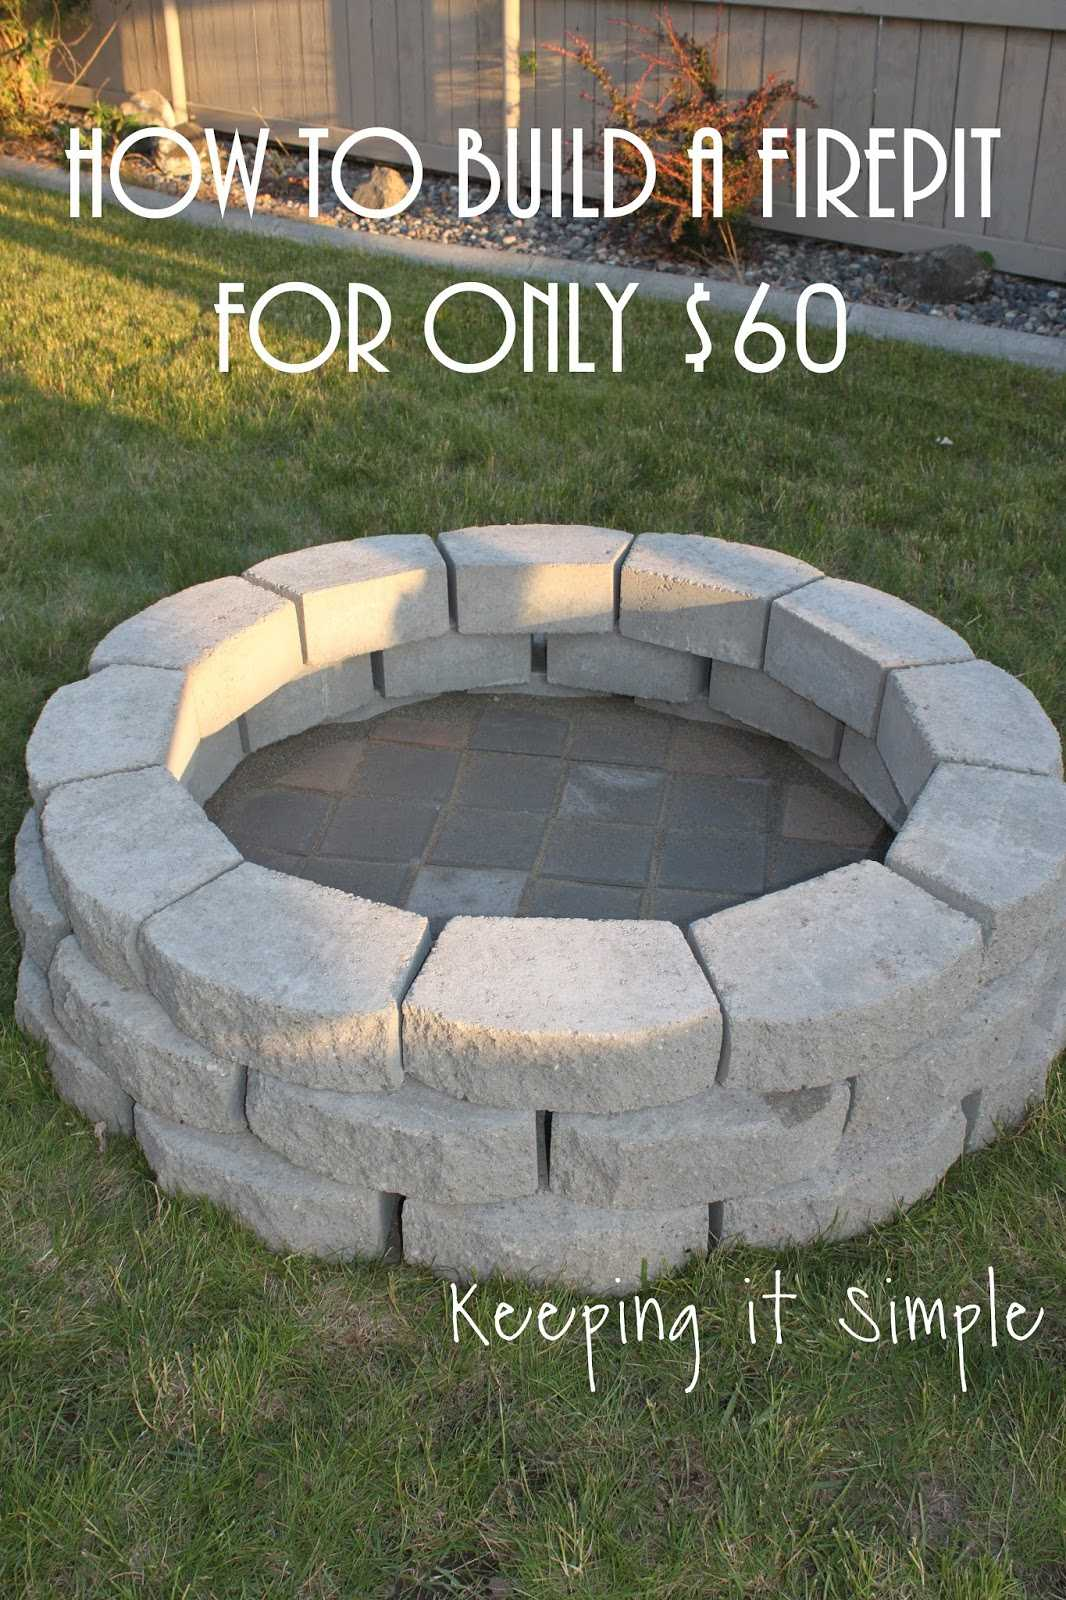 30 Backyard Fire Pit Ideas to Inspire You - Gardenholic on Diy Outdoor Fire  id=50275